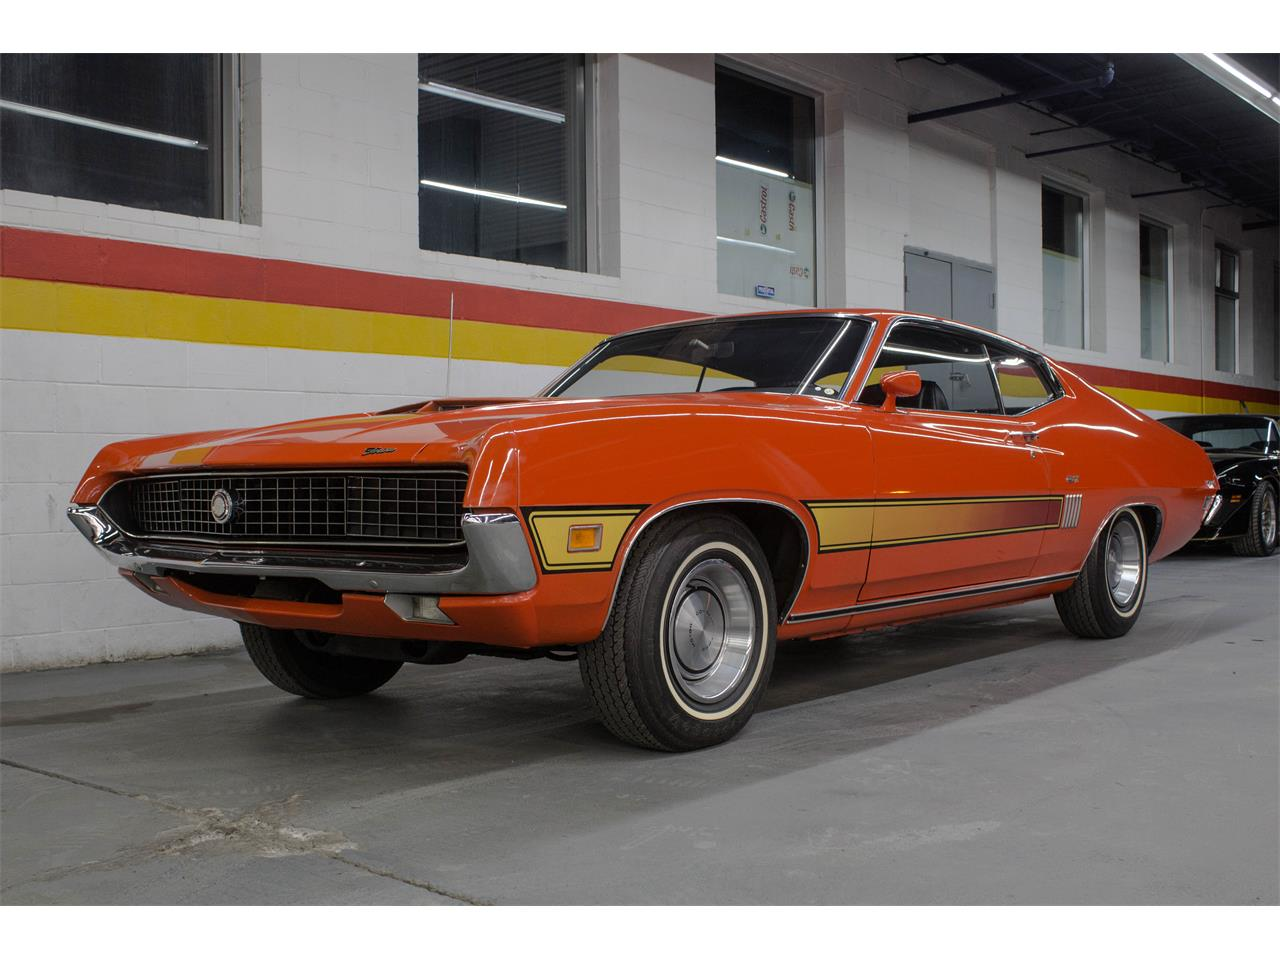 Large Picture of Classic '70 Ford Torino located in Quebec - $59,995.00 - G9ZX